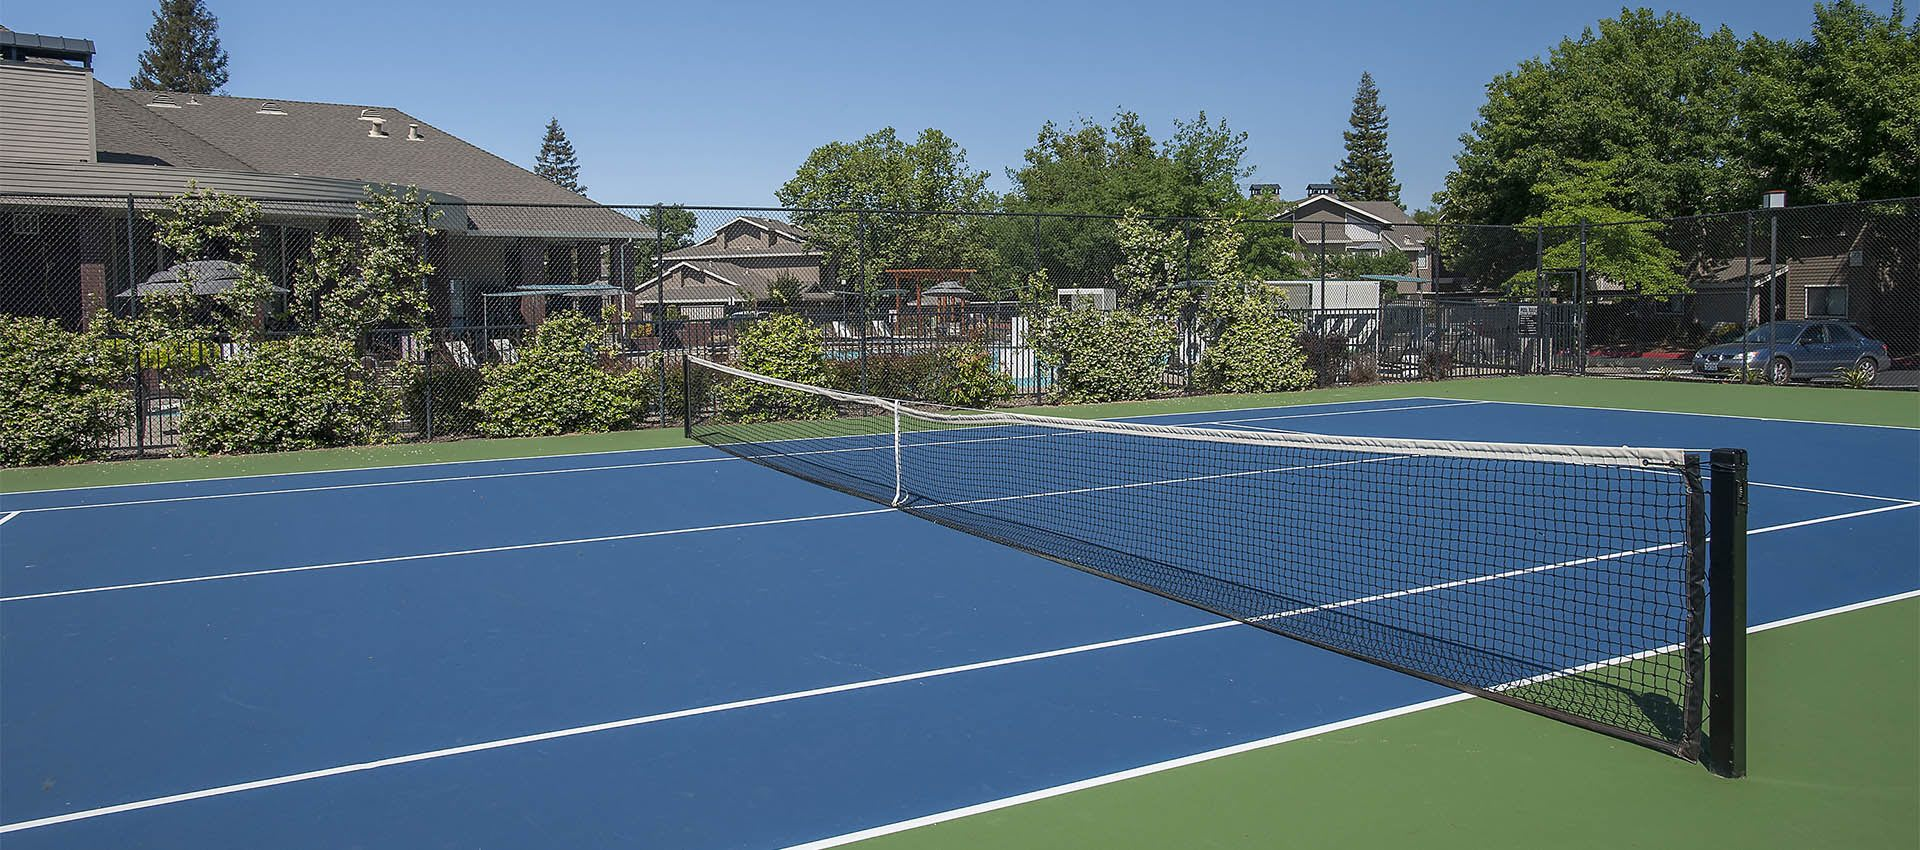 Tennis Courts at Deer Valley Apartment Homes in Roseville, California